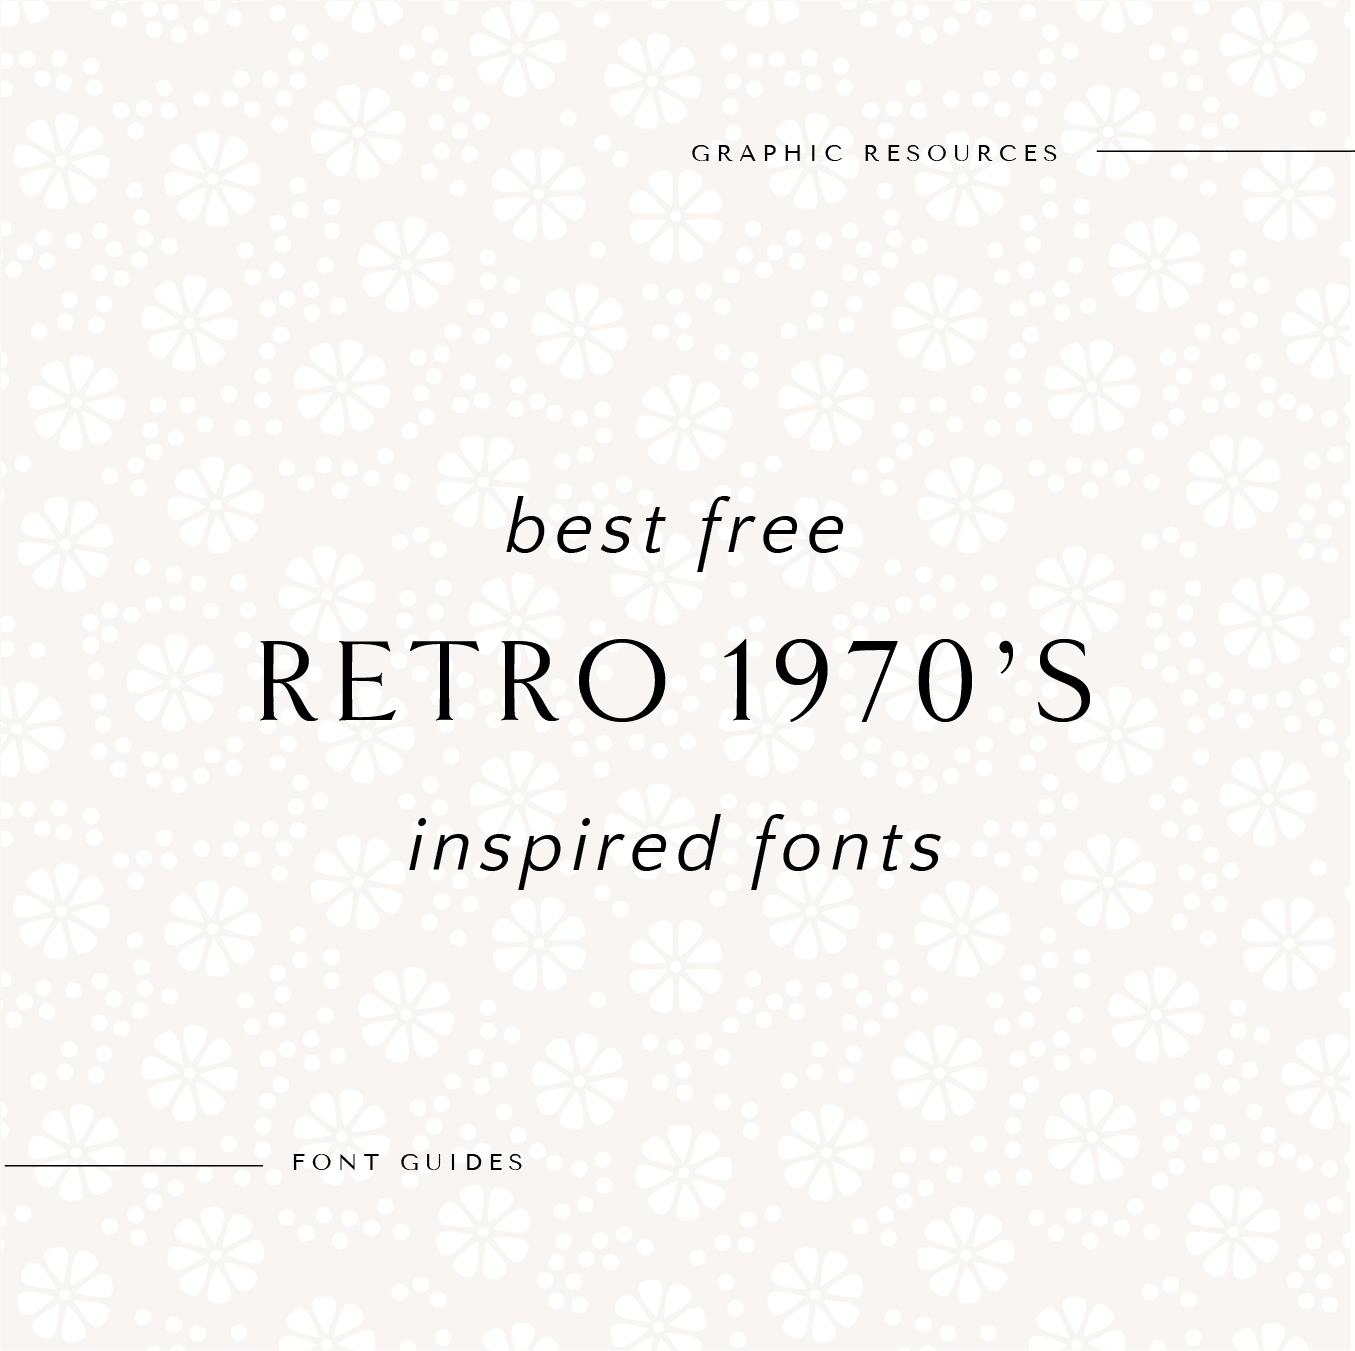 The Best Free Retro 1970's Inspired Fonts